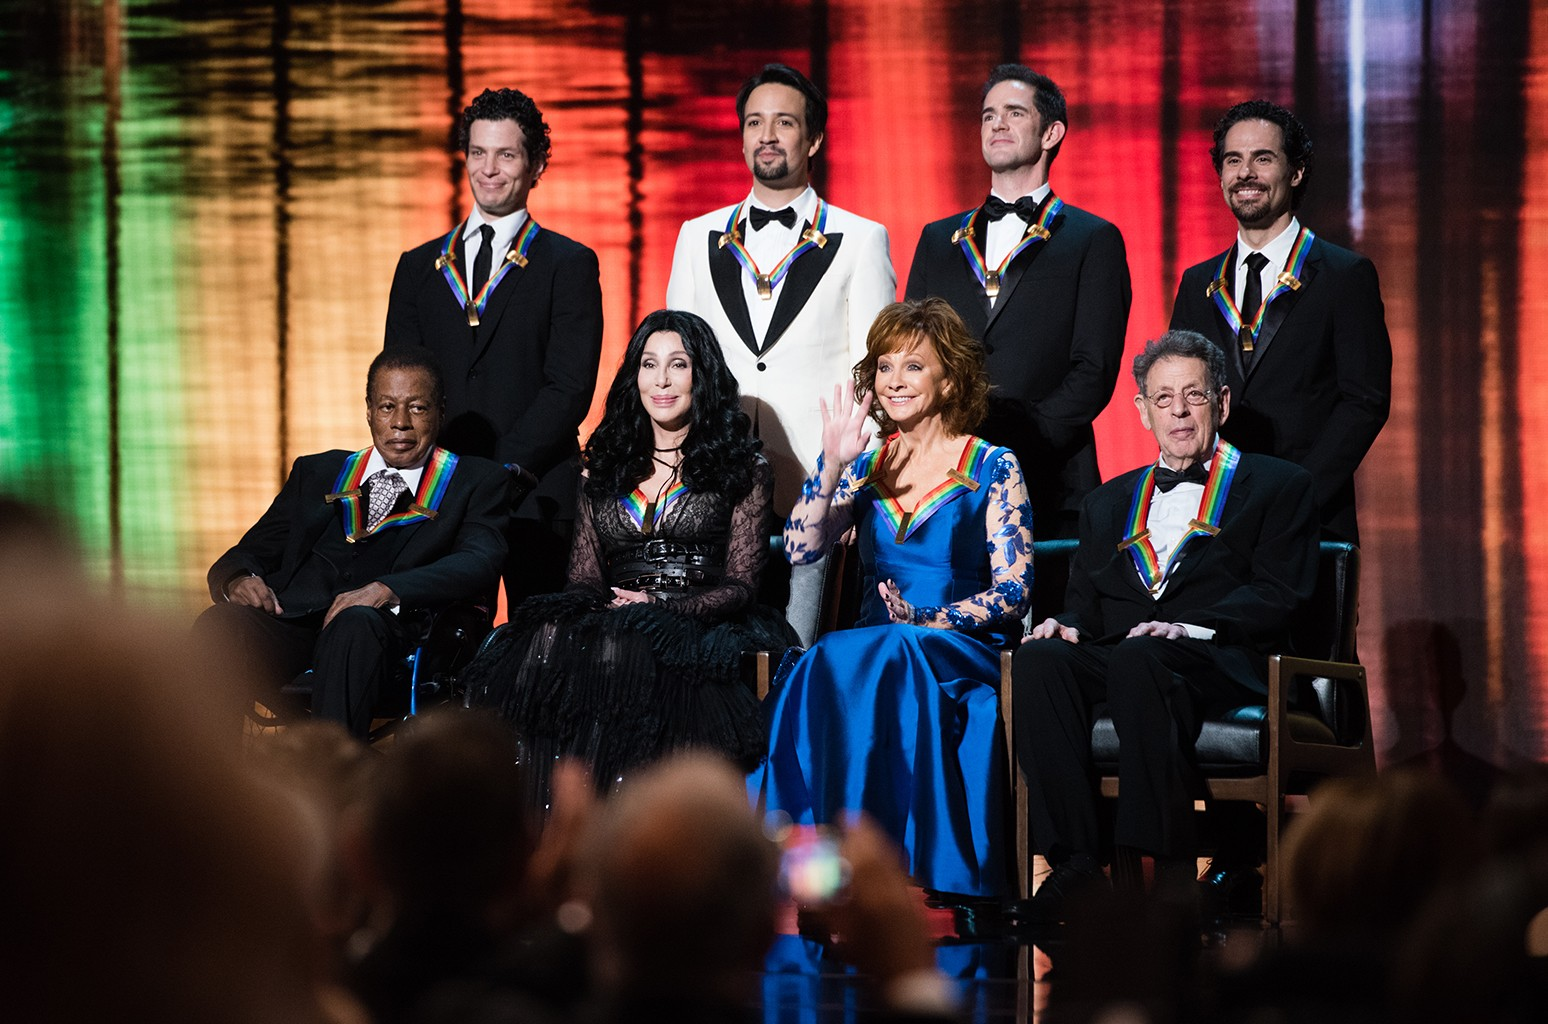 At the top of the show, the awardees are pictured on stage. In the back row are Hamilton Co-Creators Thomas Kail, Lin-Manuel Miranda, Andy Blankenbuehler, and Alex Lacamoire. In the front are Wayne Shorter, Cher, Reba McEntire, and Philip Glass.